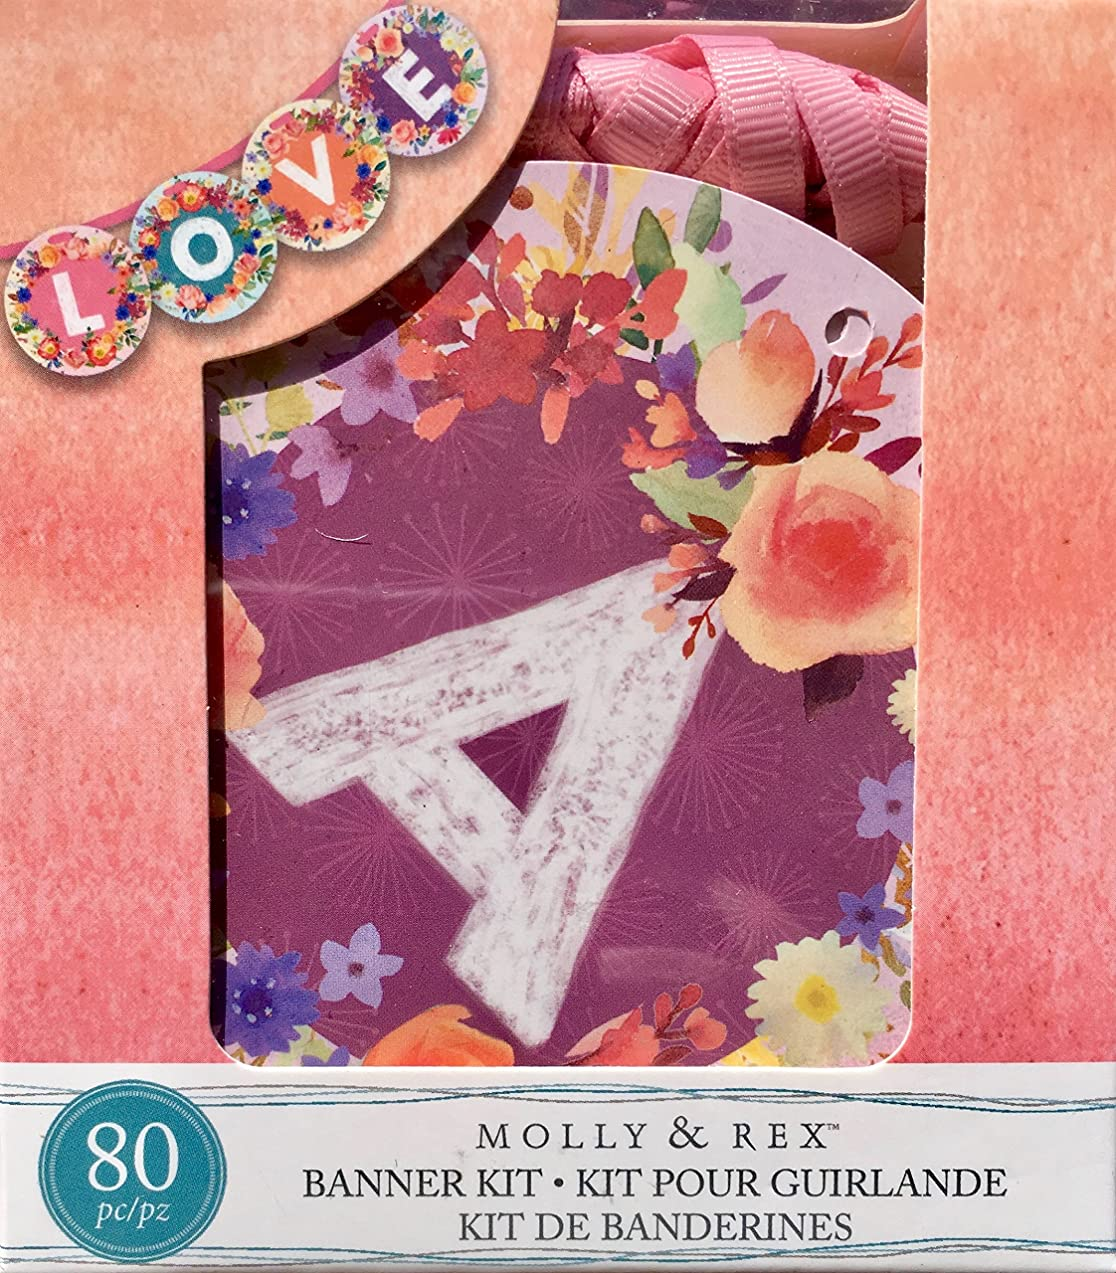 Molly & Rex Love Small Banner Kit, Peachy Pink, 74242